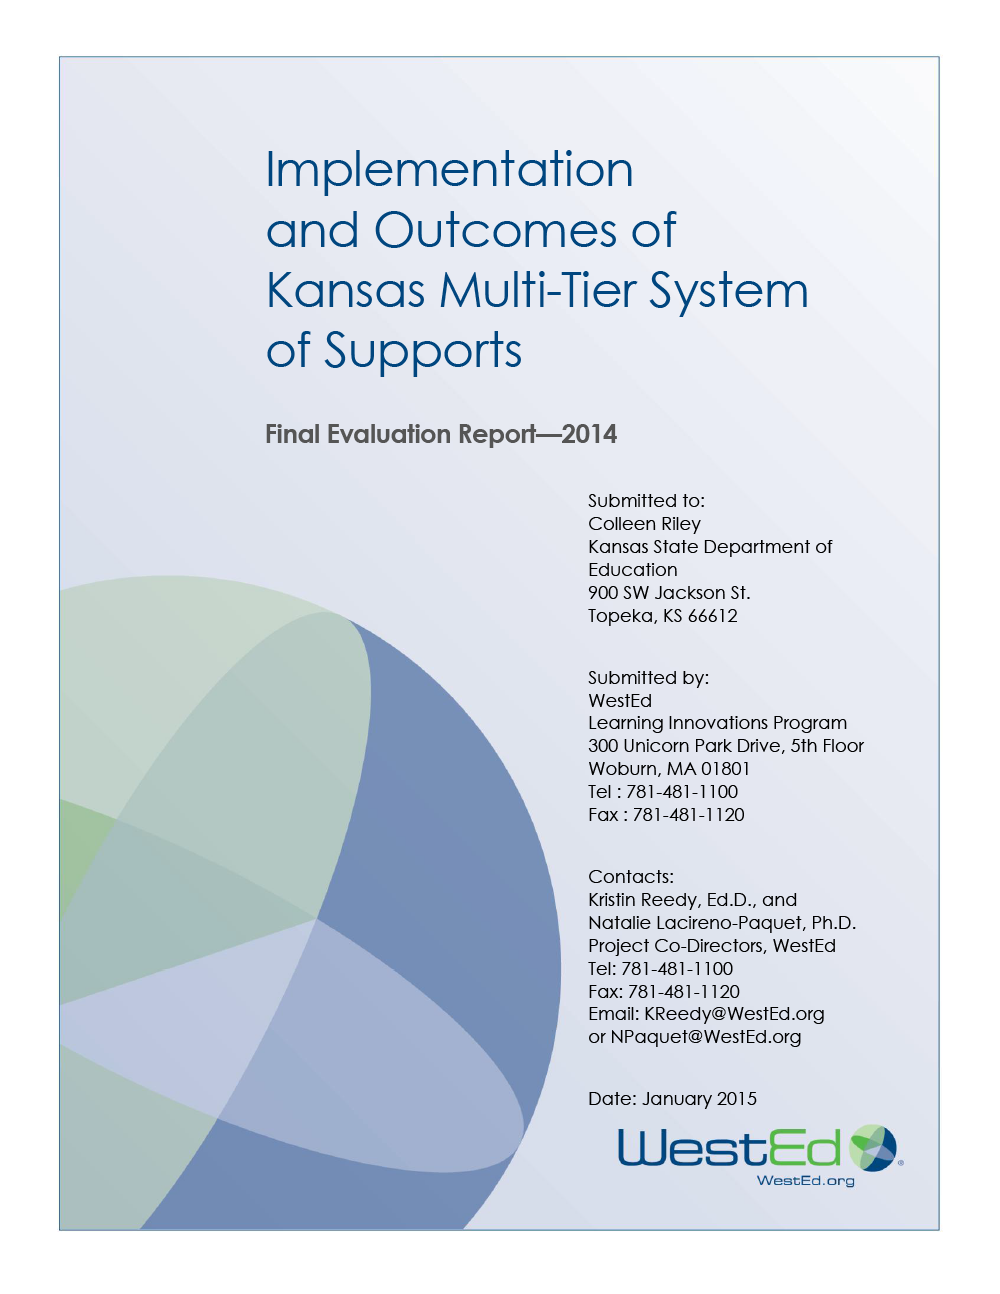 Cover image of Implementation and Outcomes of Kansas Multi-Tier System of Supports: Final Evaluation Report 2014